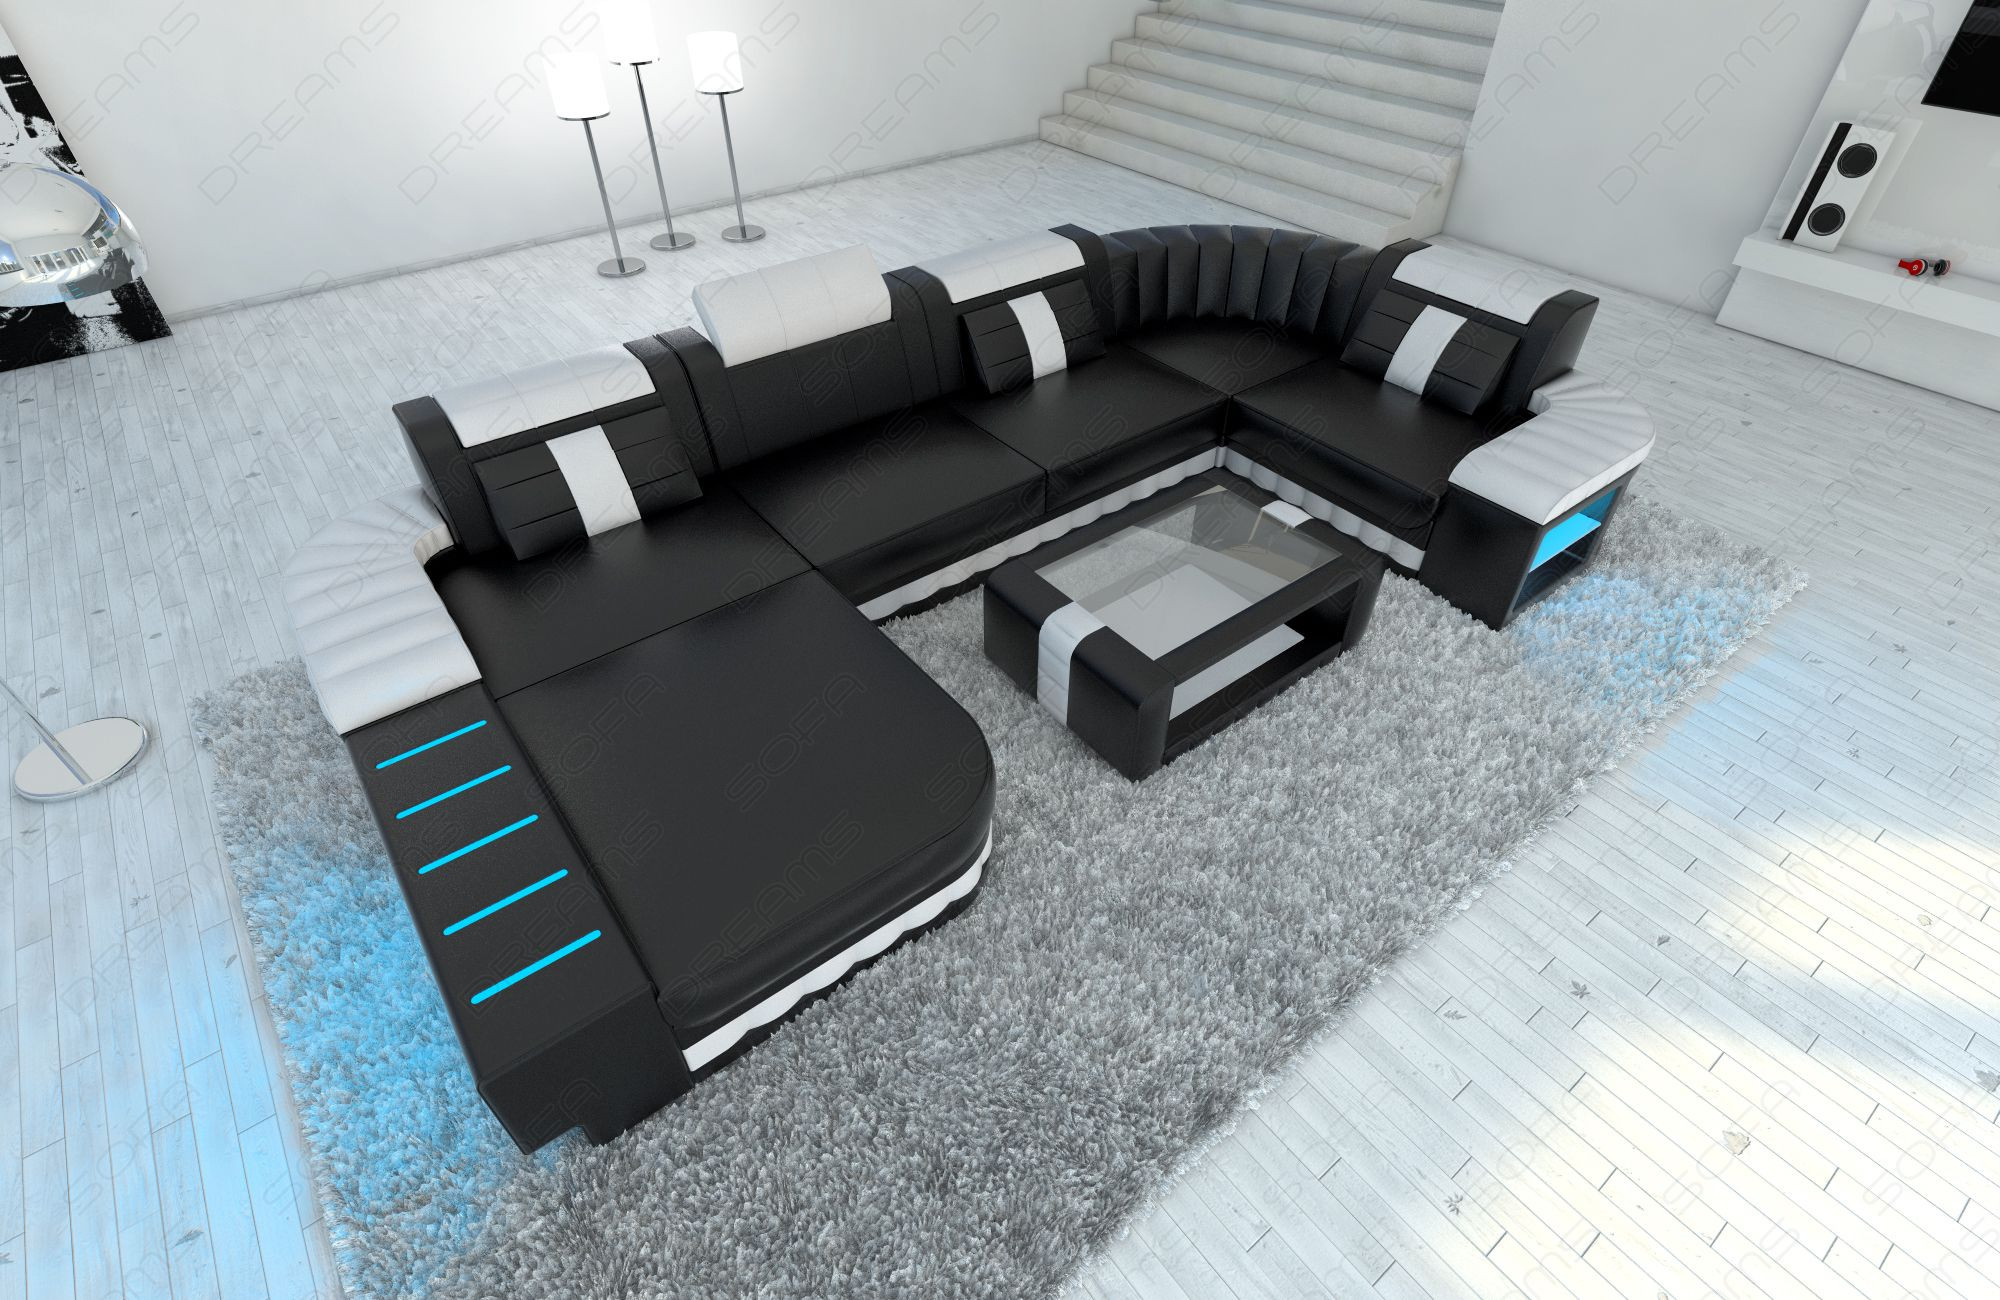 Luxury Sofa Boston with LED Lights black-white